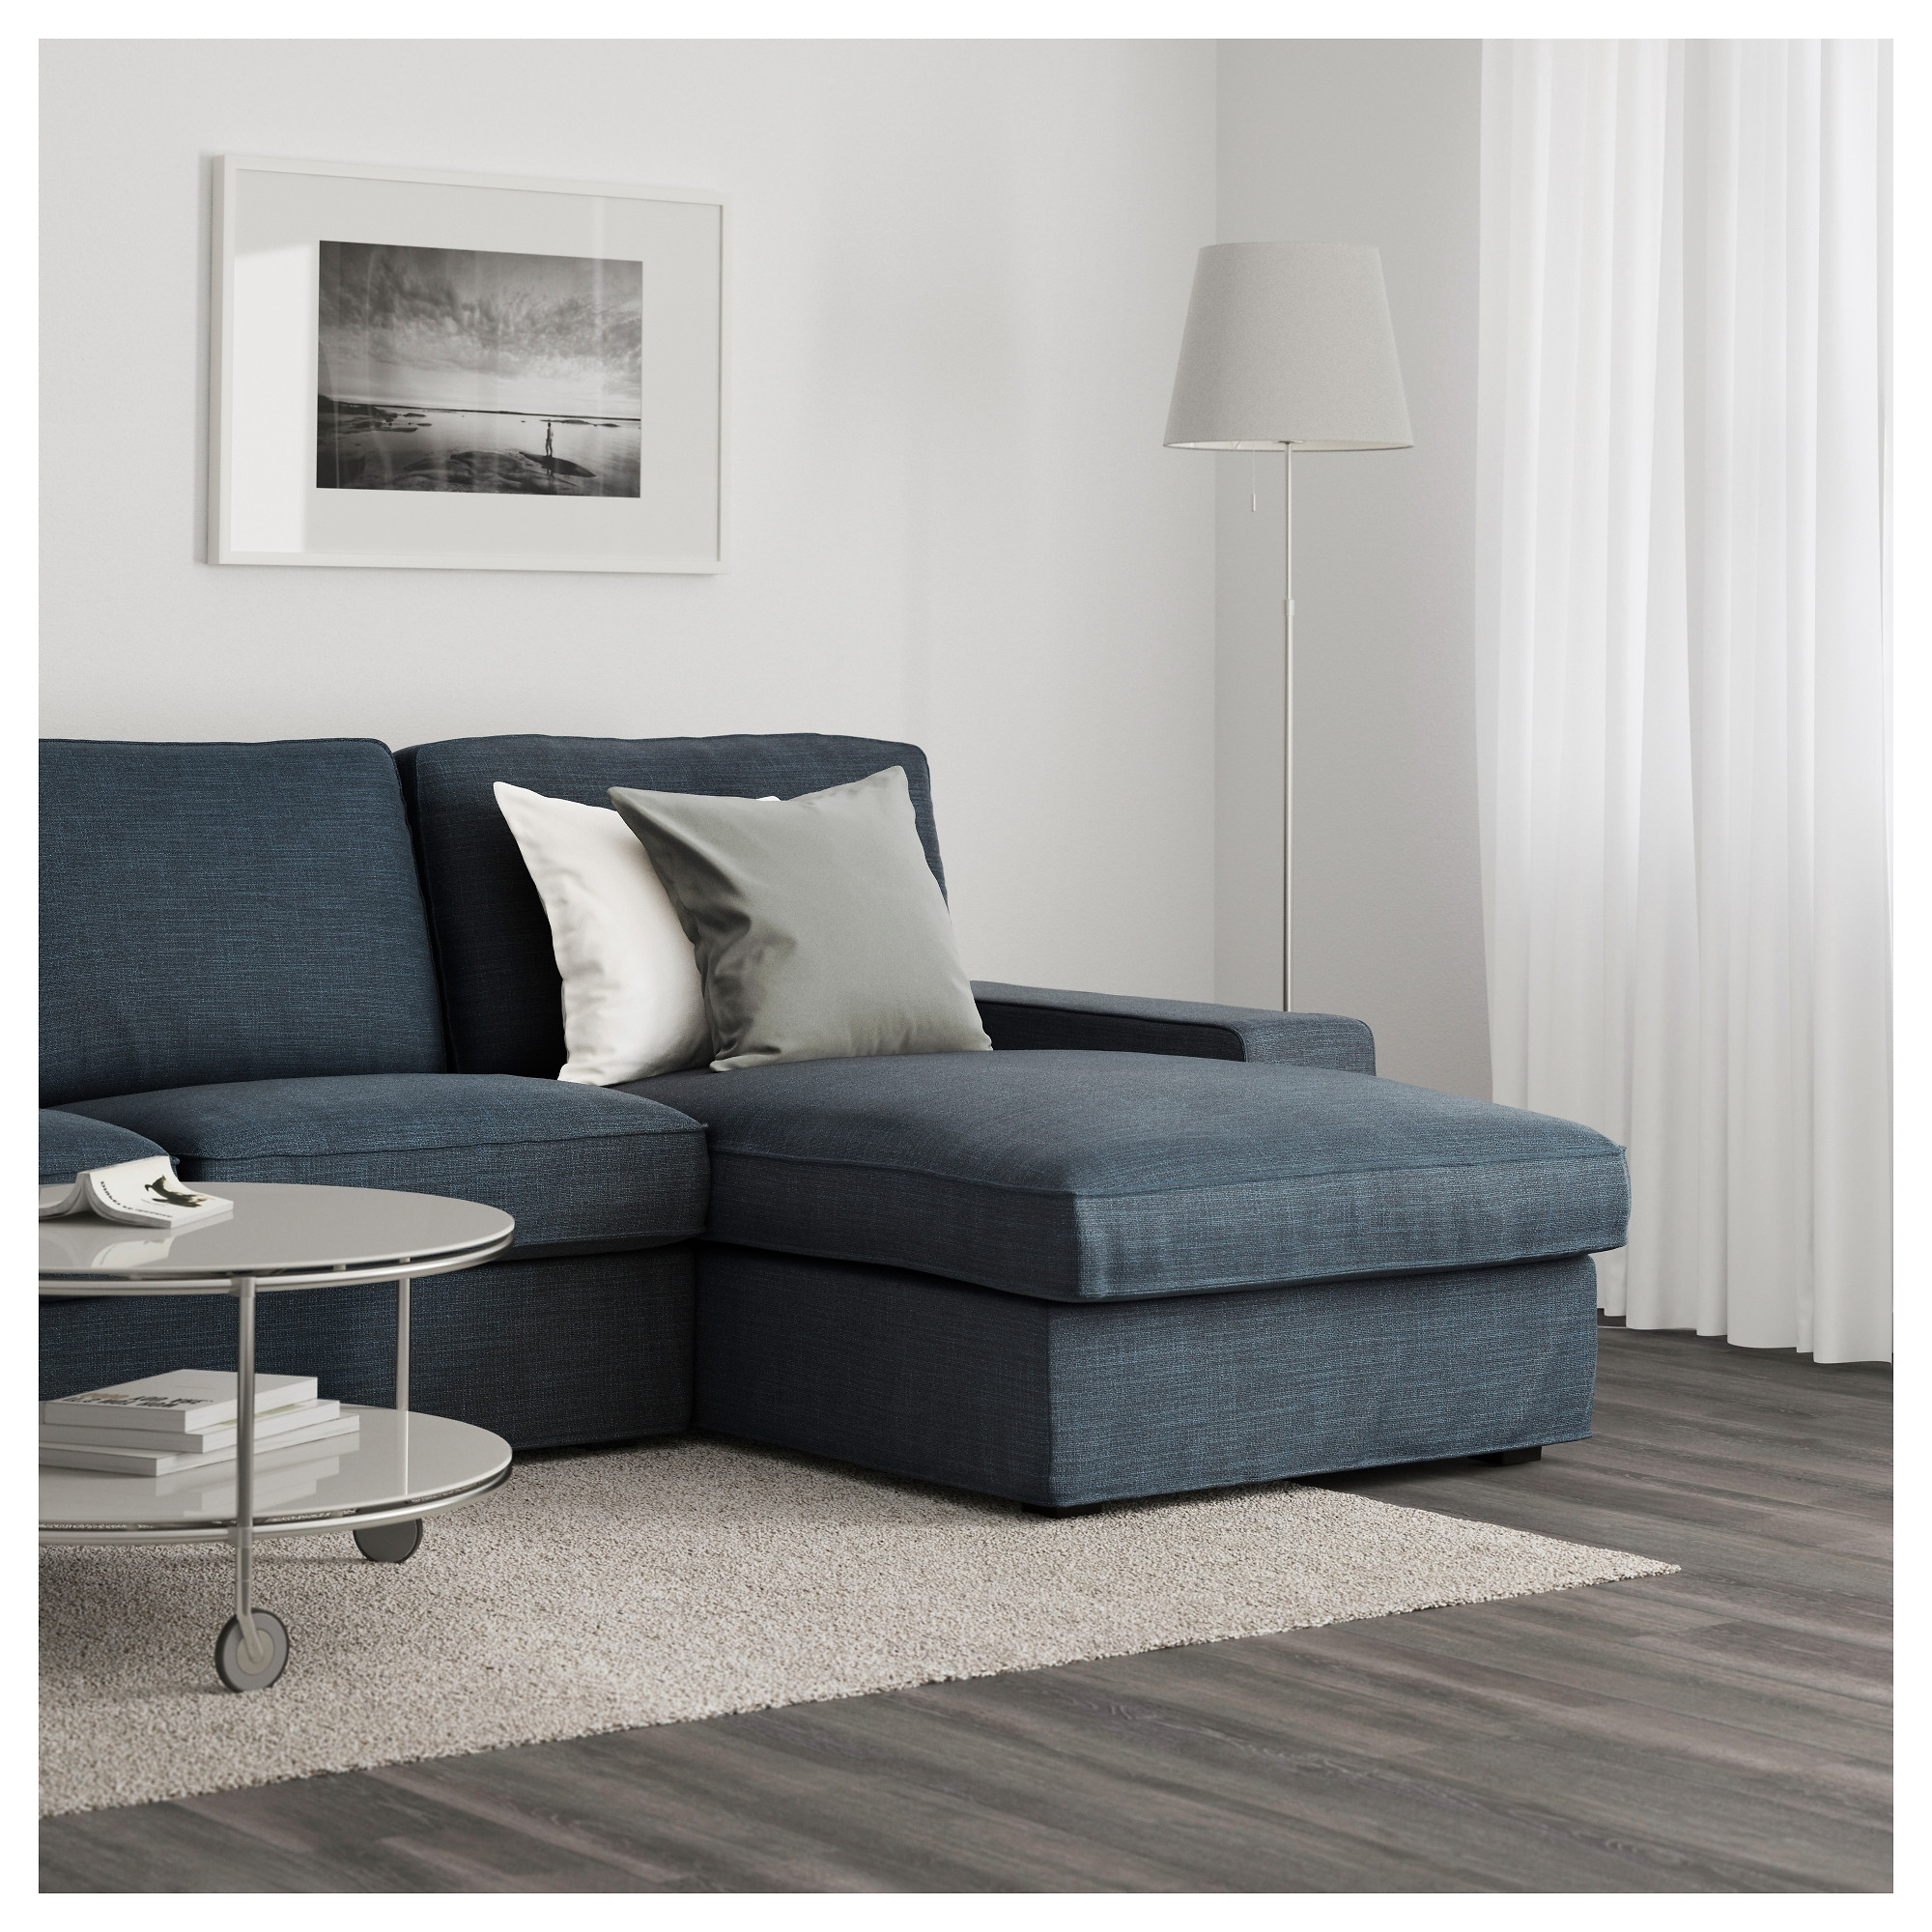 Kivik Sofa – With Chaise/hillared Beige – Ikea Within Well Known Ikea Ektorp Chaises (View 15 of 15)